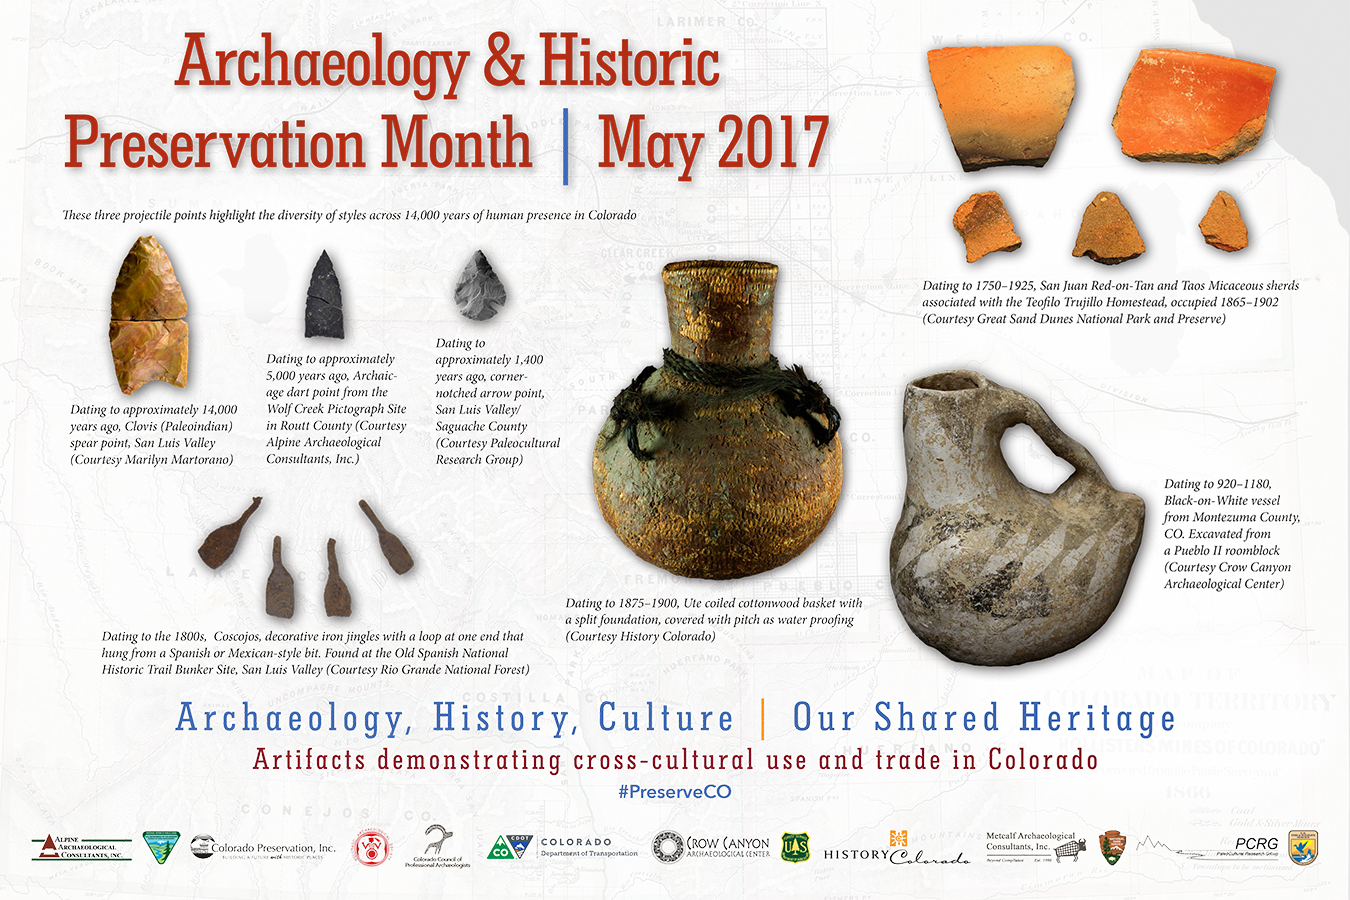 2017 Archaeology & Historic Preservation Month poster.